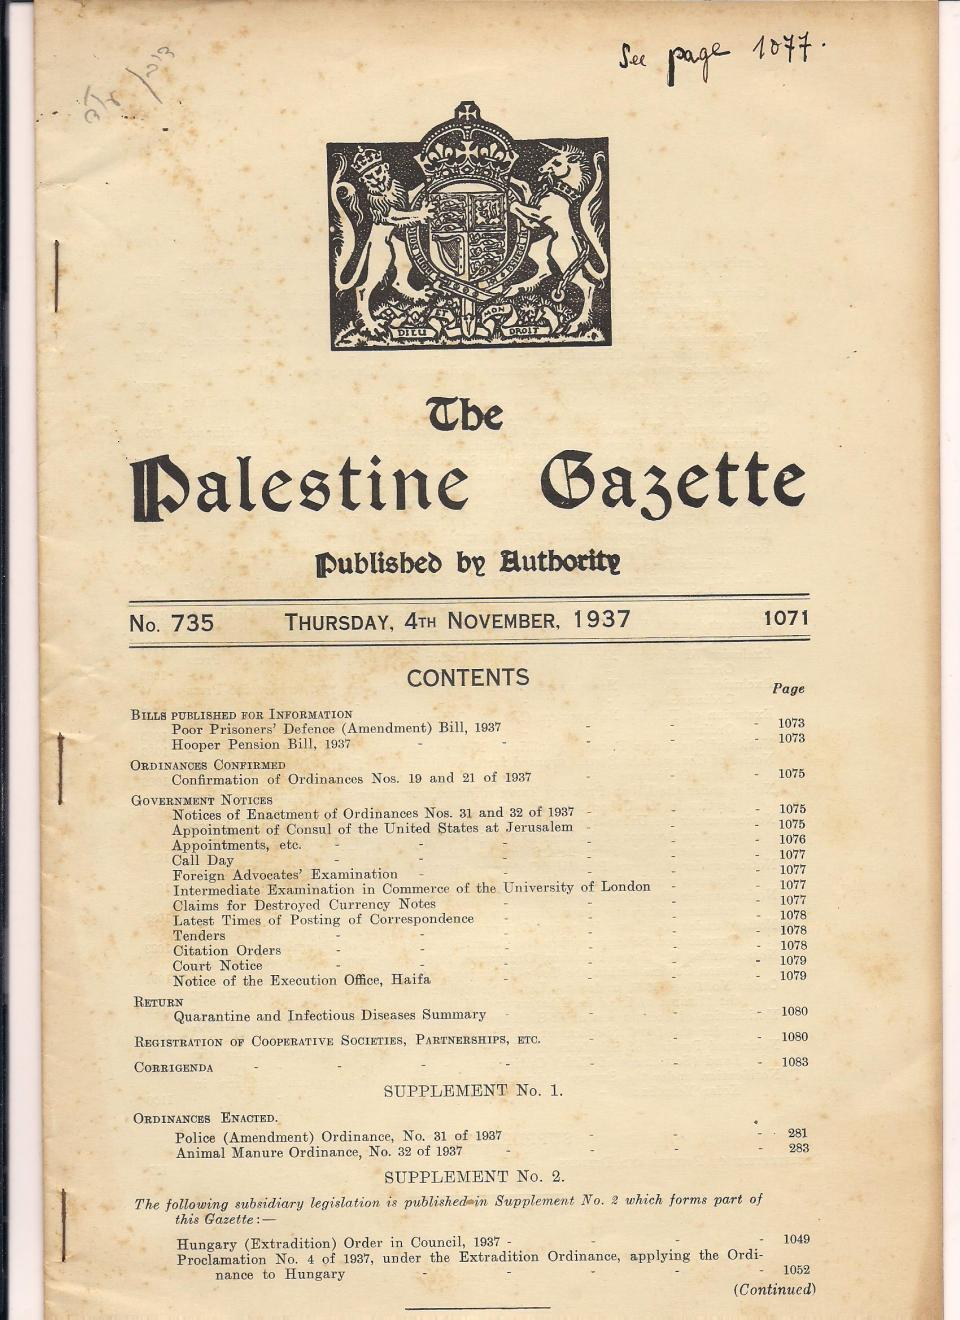 The Palestine Gazette, November 4th, 1937 001